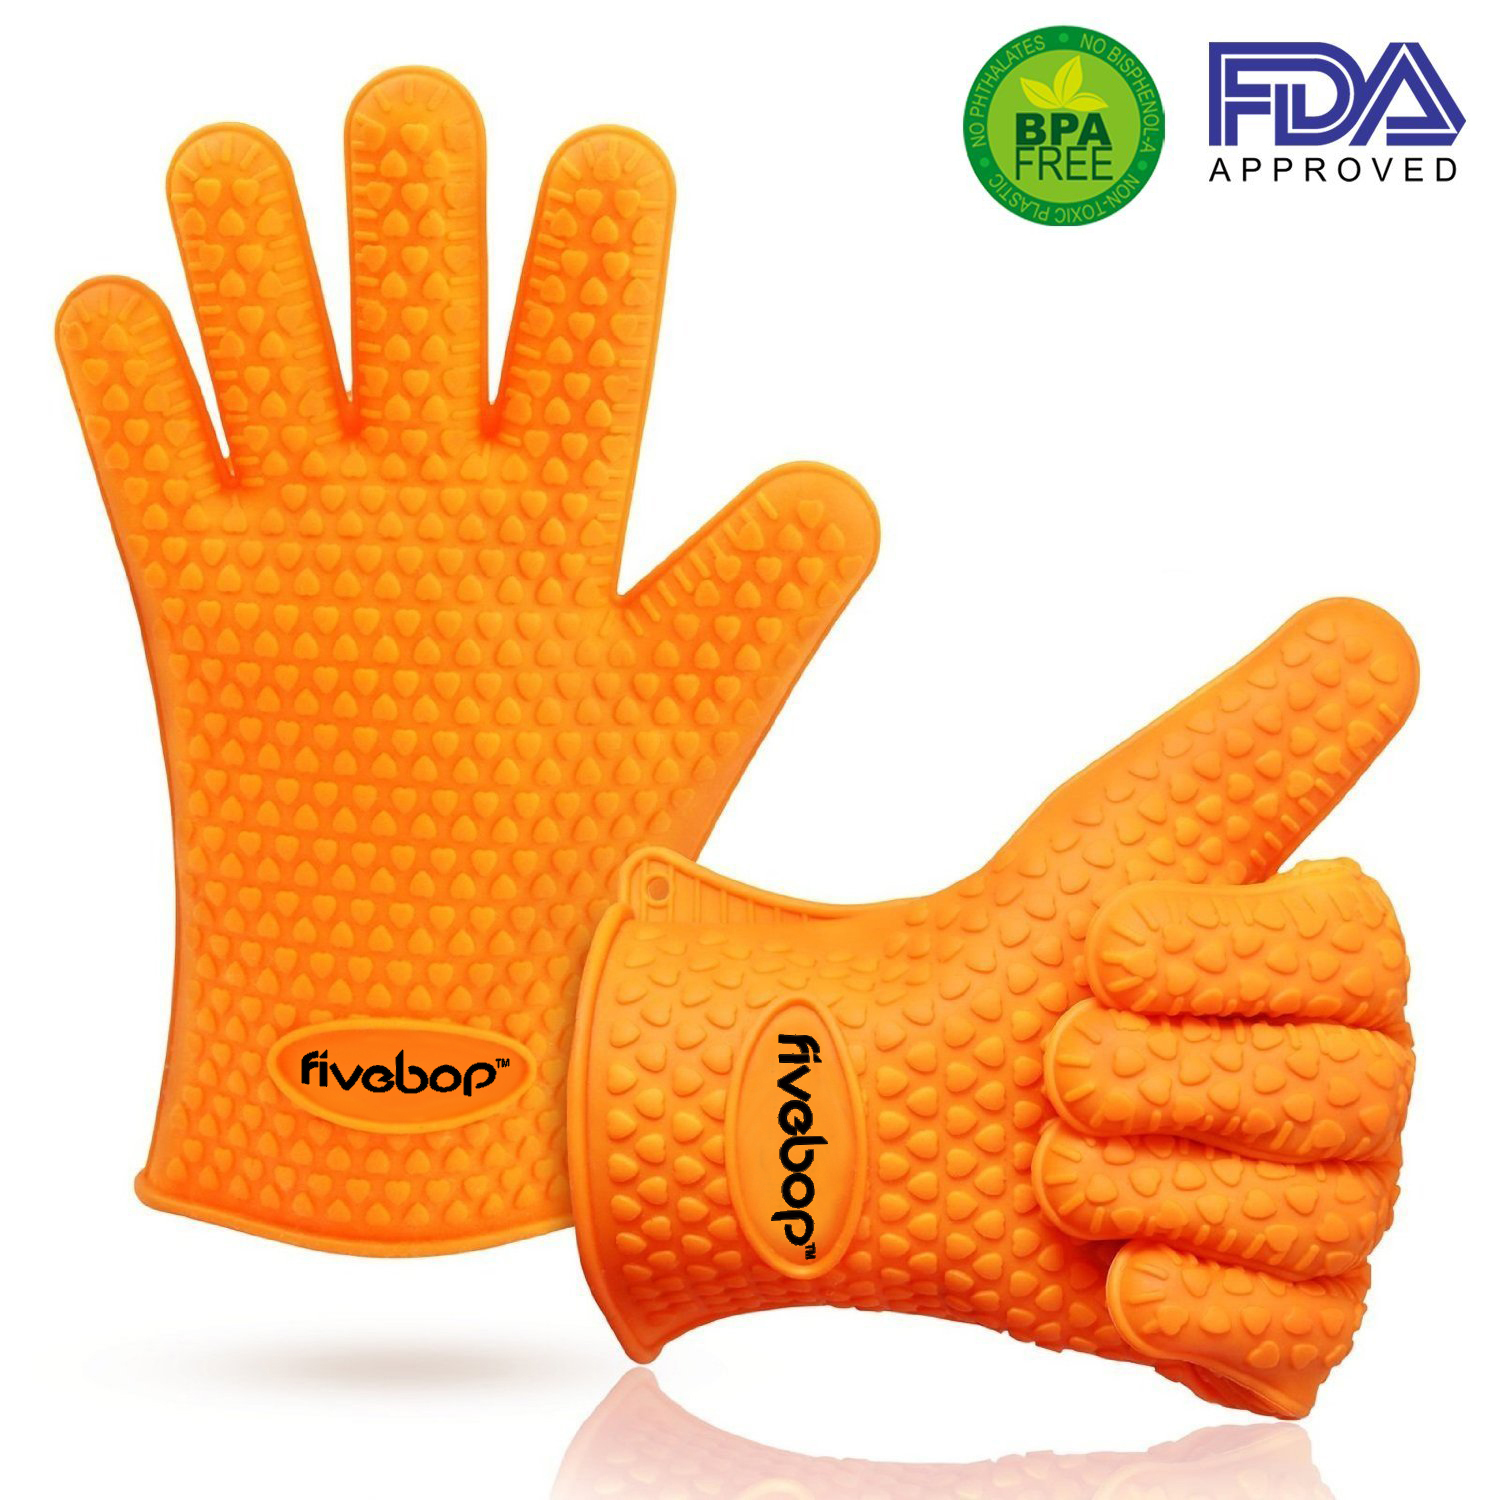 Fivebop™ Silicone Oven Gloves with Fingers - BBQ Oven Mitts - Orange